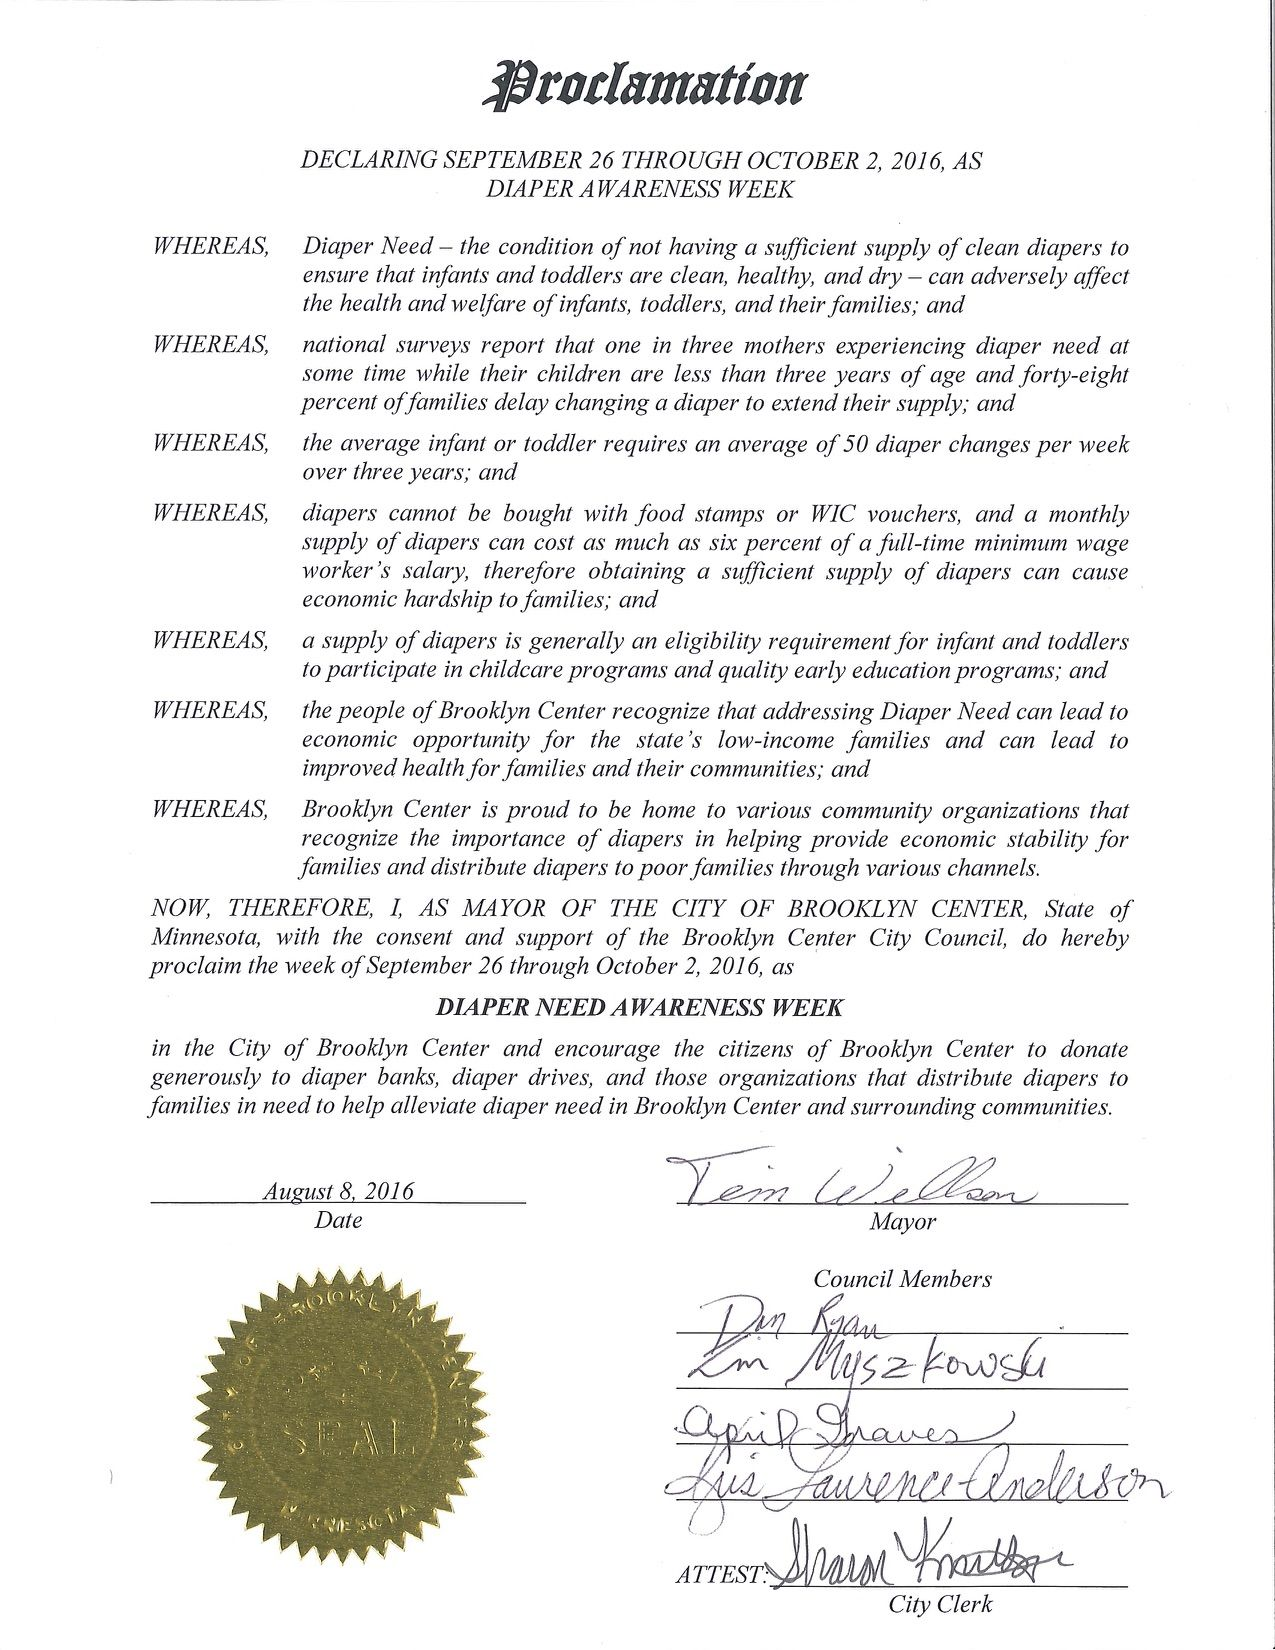 BROOKLYN CENTER, MN - Mayoral proclamation recognizing Diaper Need Awareness Week (Sep. 26 - Oct. 2, 2016) #DiaperNeed diaperneed.org